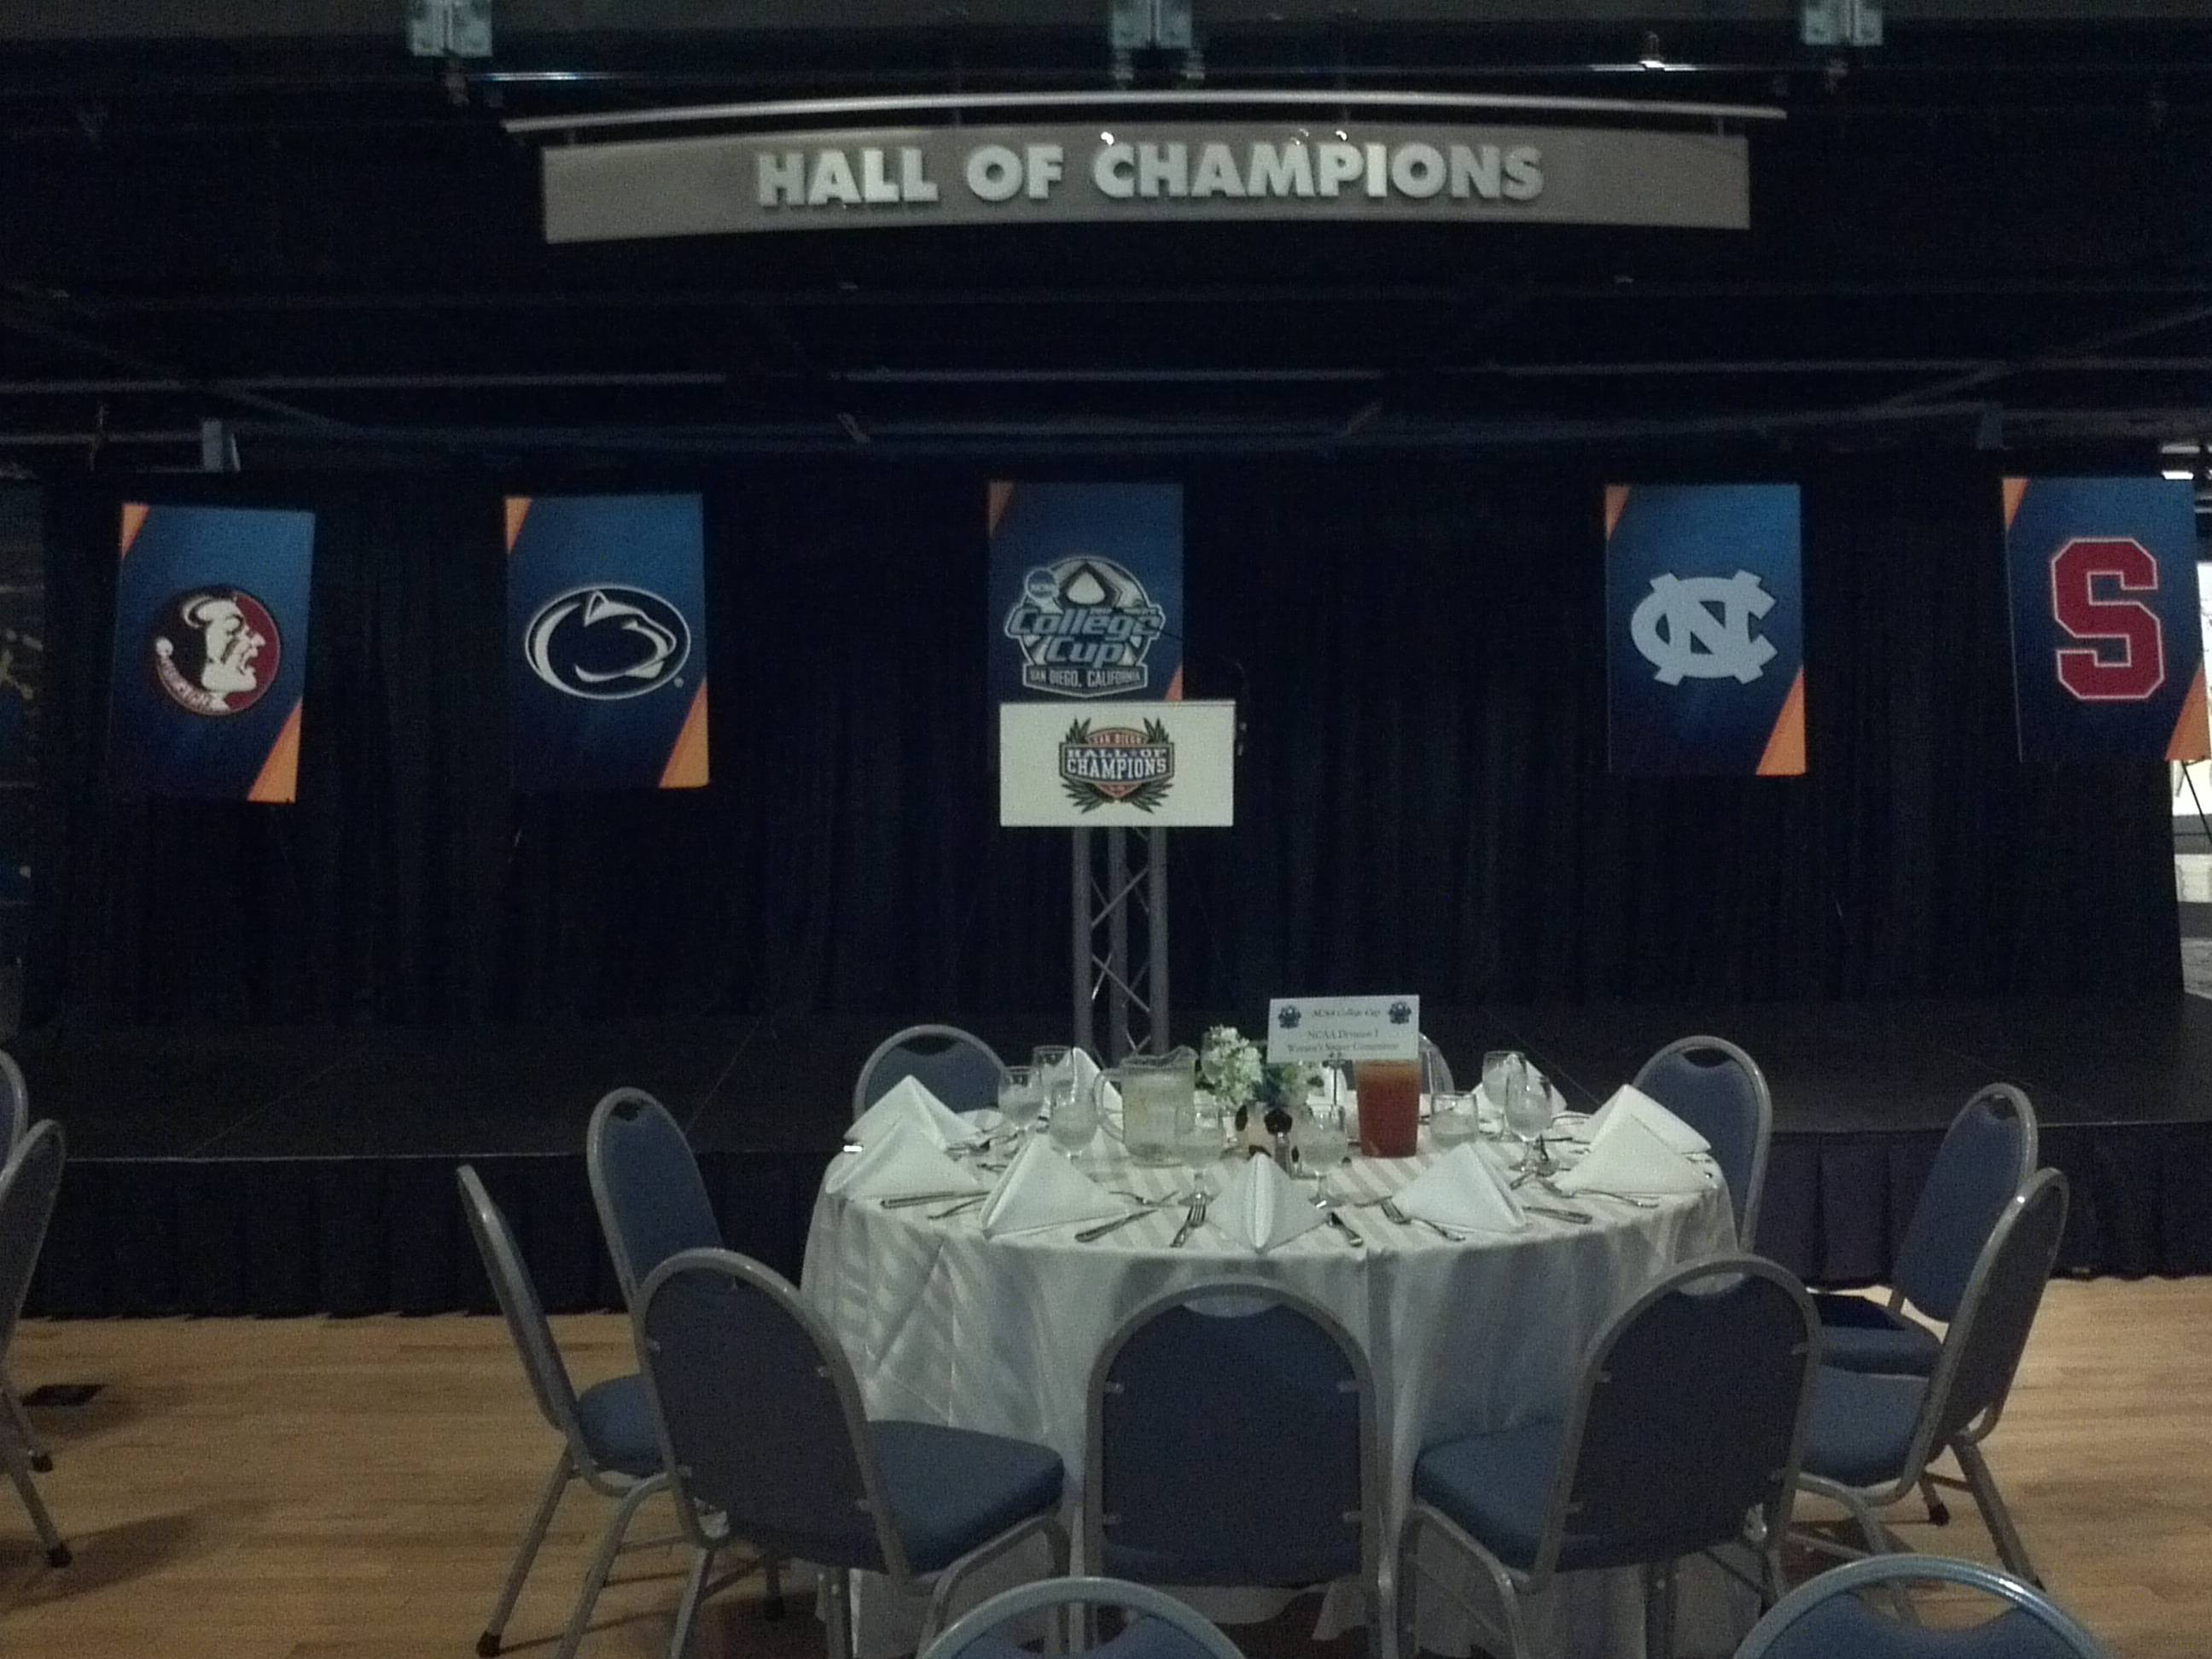 The championship banquet inside the San Diego Hall of Champions.